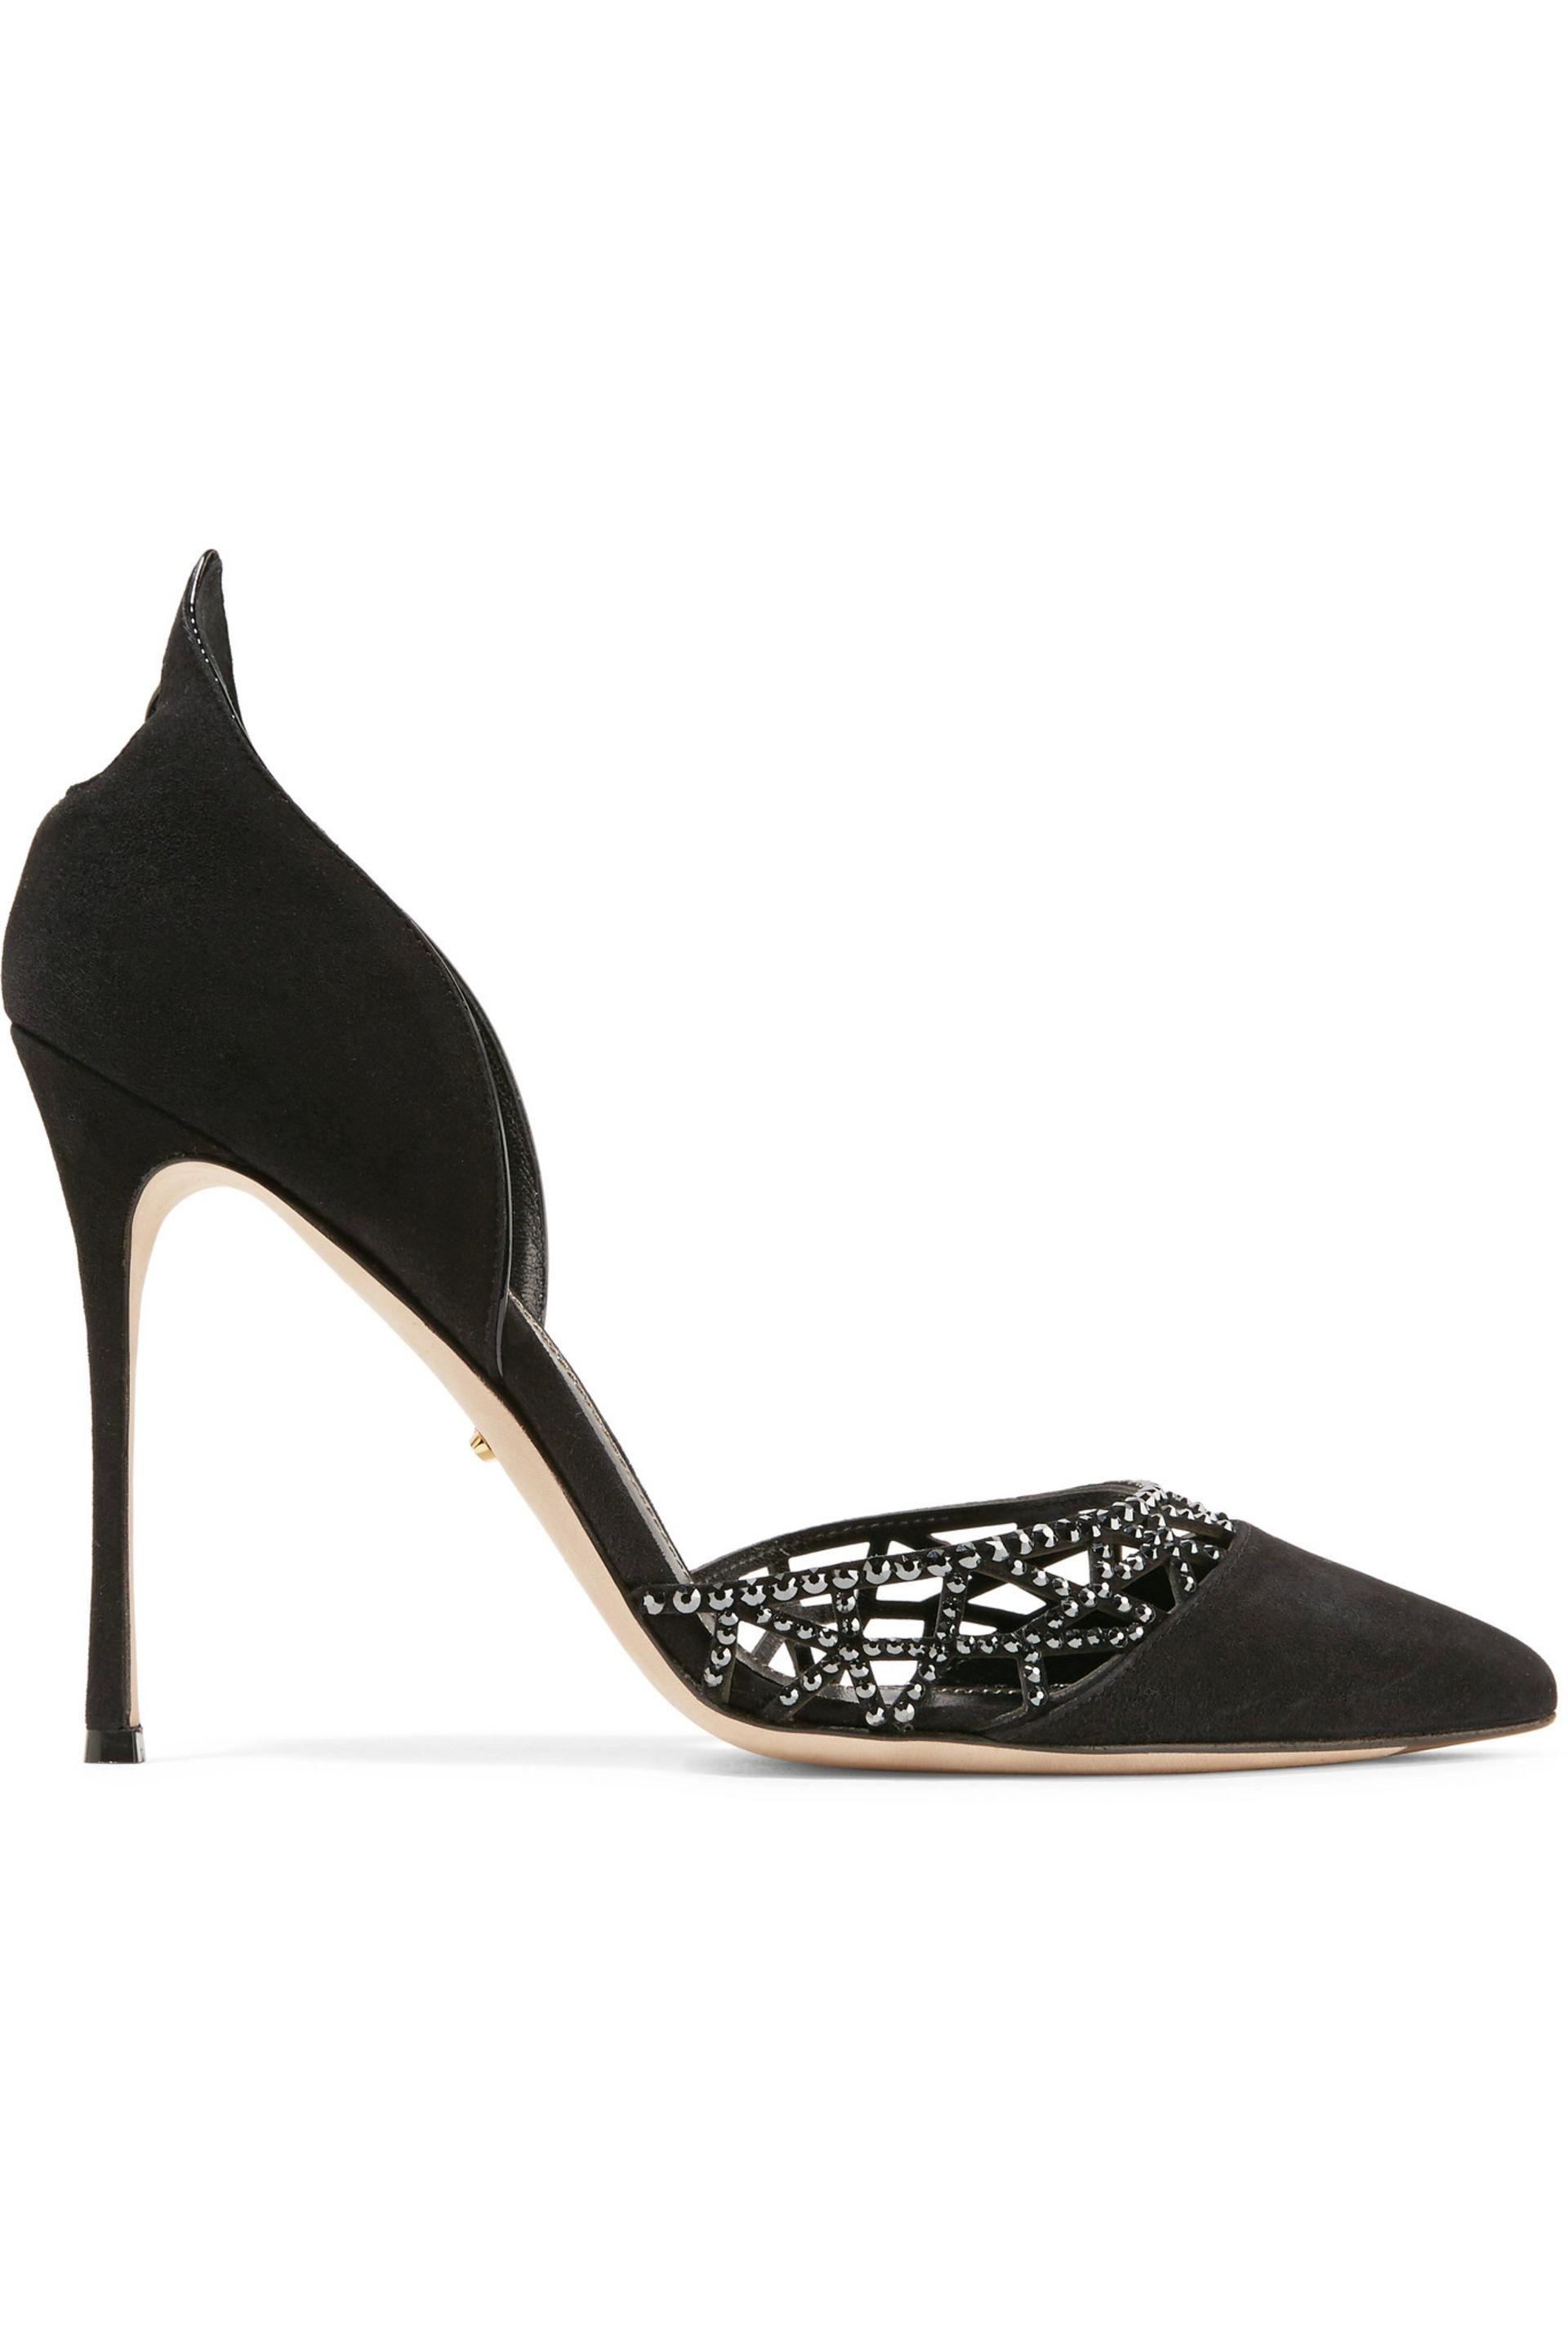 low priced fd959 11e11 sergio-rossi-Black-Crystal-embellished-Laser-cut-Suede-Pumps.jpeg